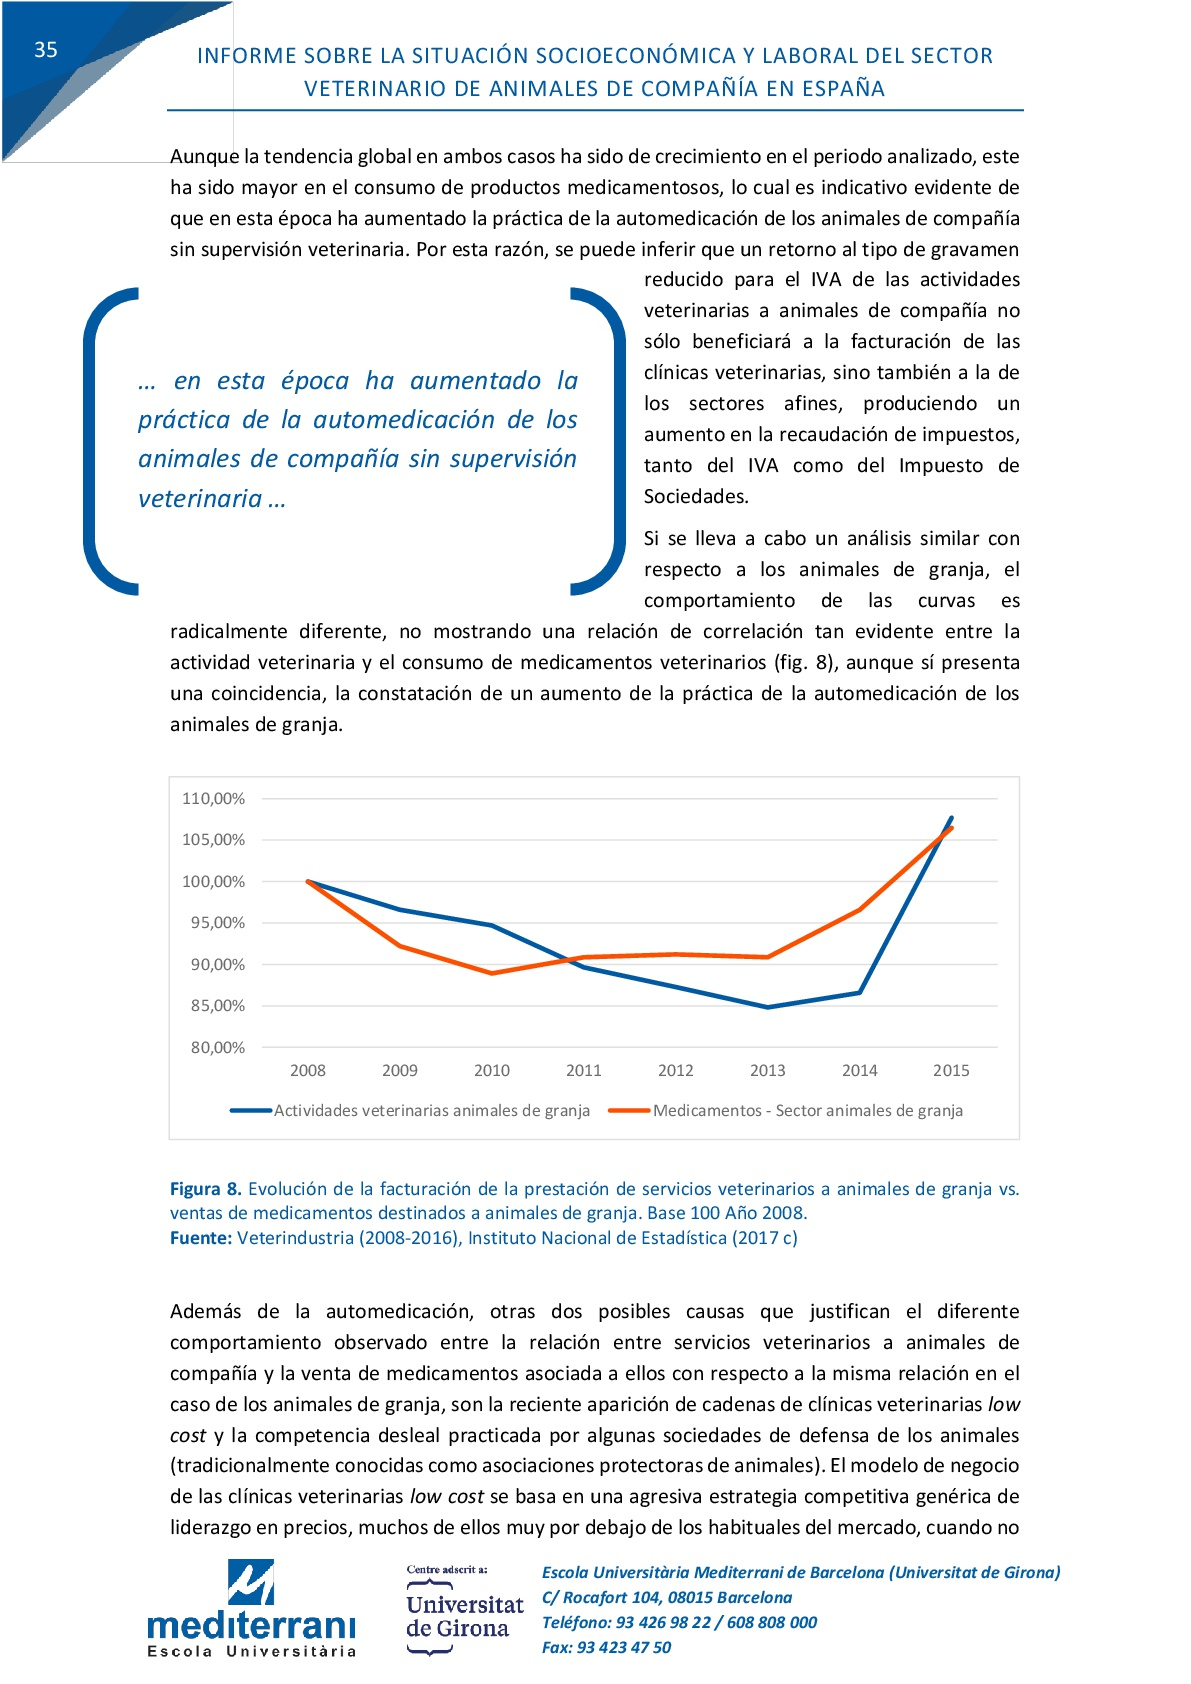 Informe-Veterinario-2017-+-informe-legal-2015-(3)-040